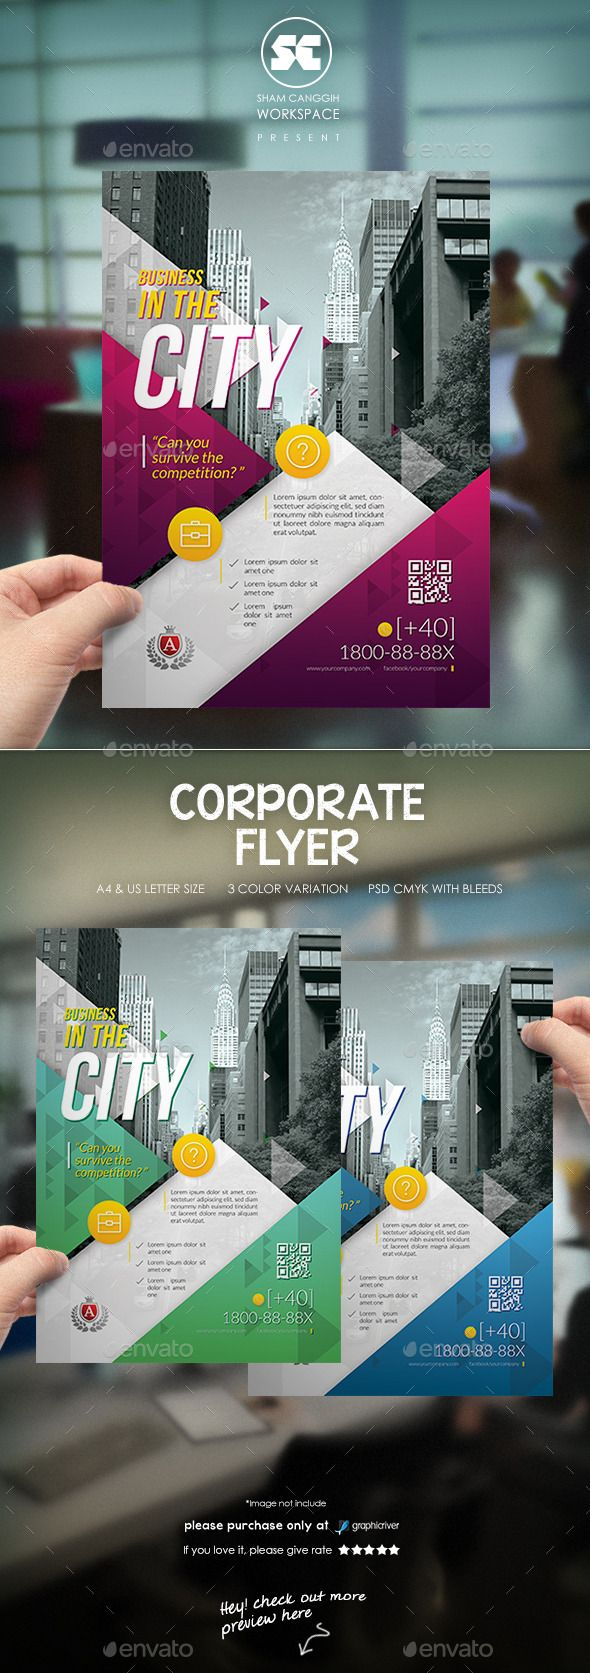 Creative Corporate Flyer — Photoshop PSD #magazine #advertisement • Available here → https://graphicriver.net/item/creative-corporate-flyer/10902708?ref=pxcr